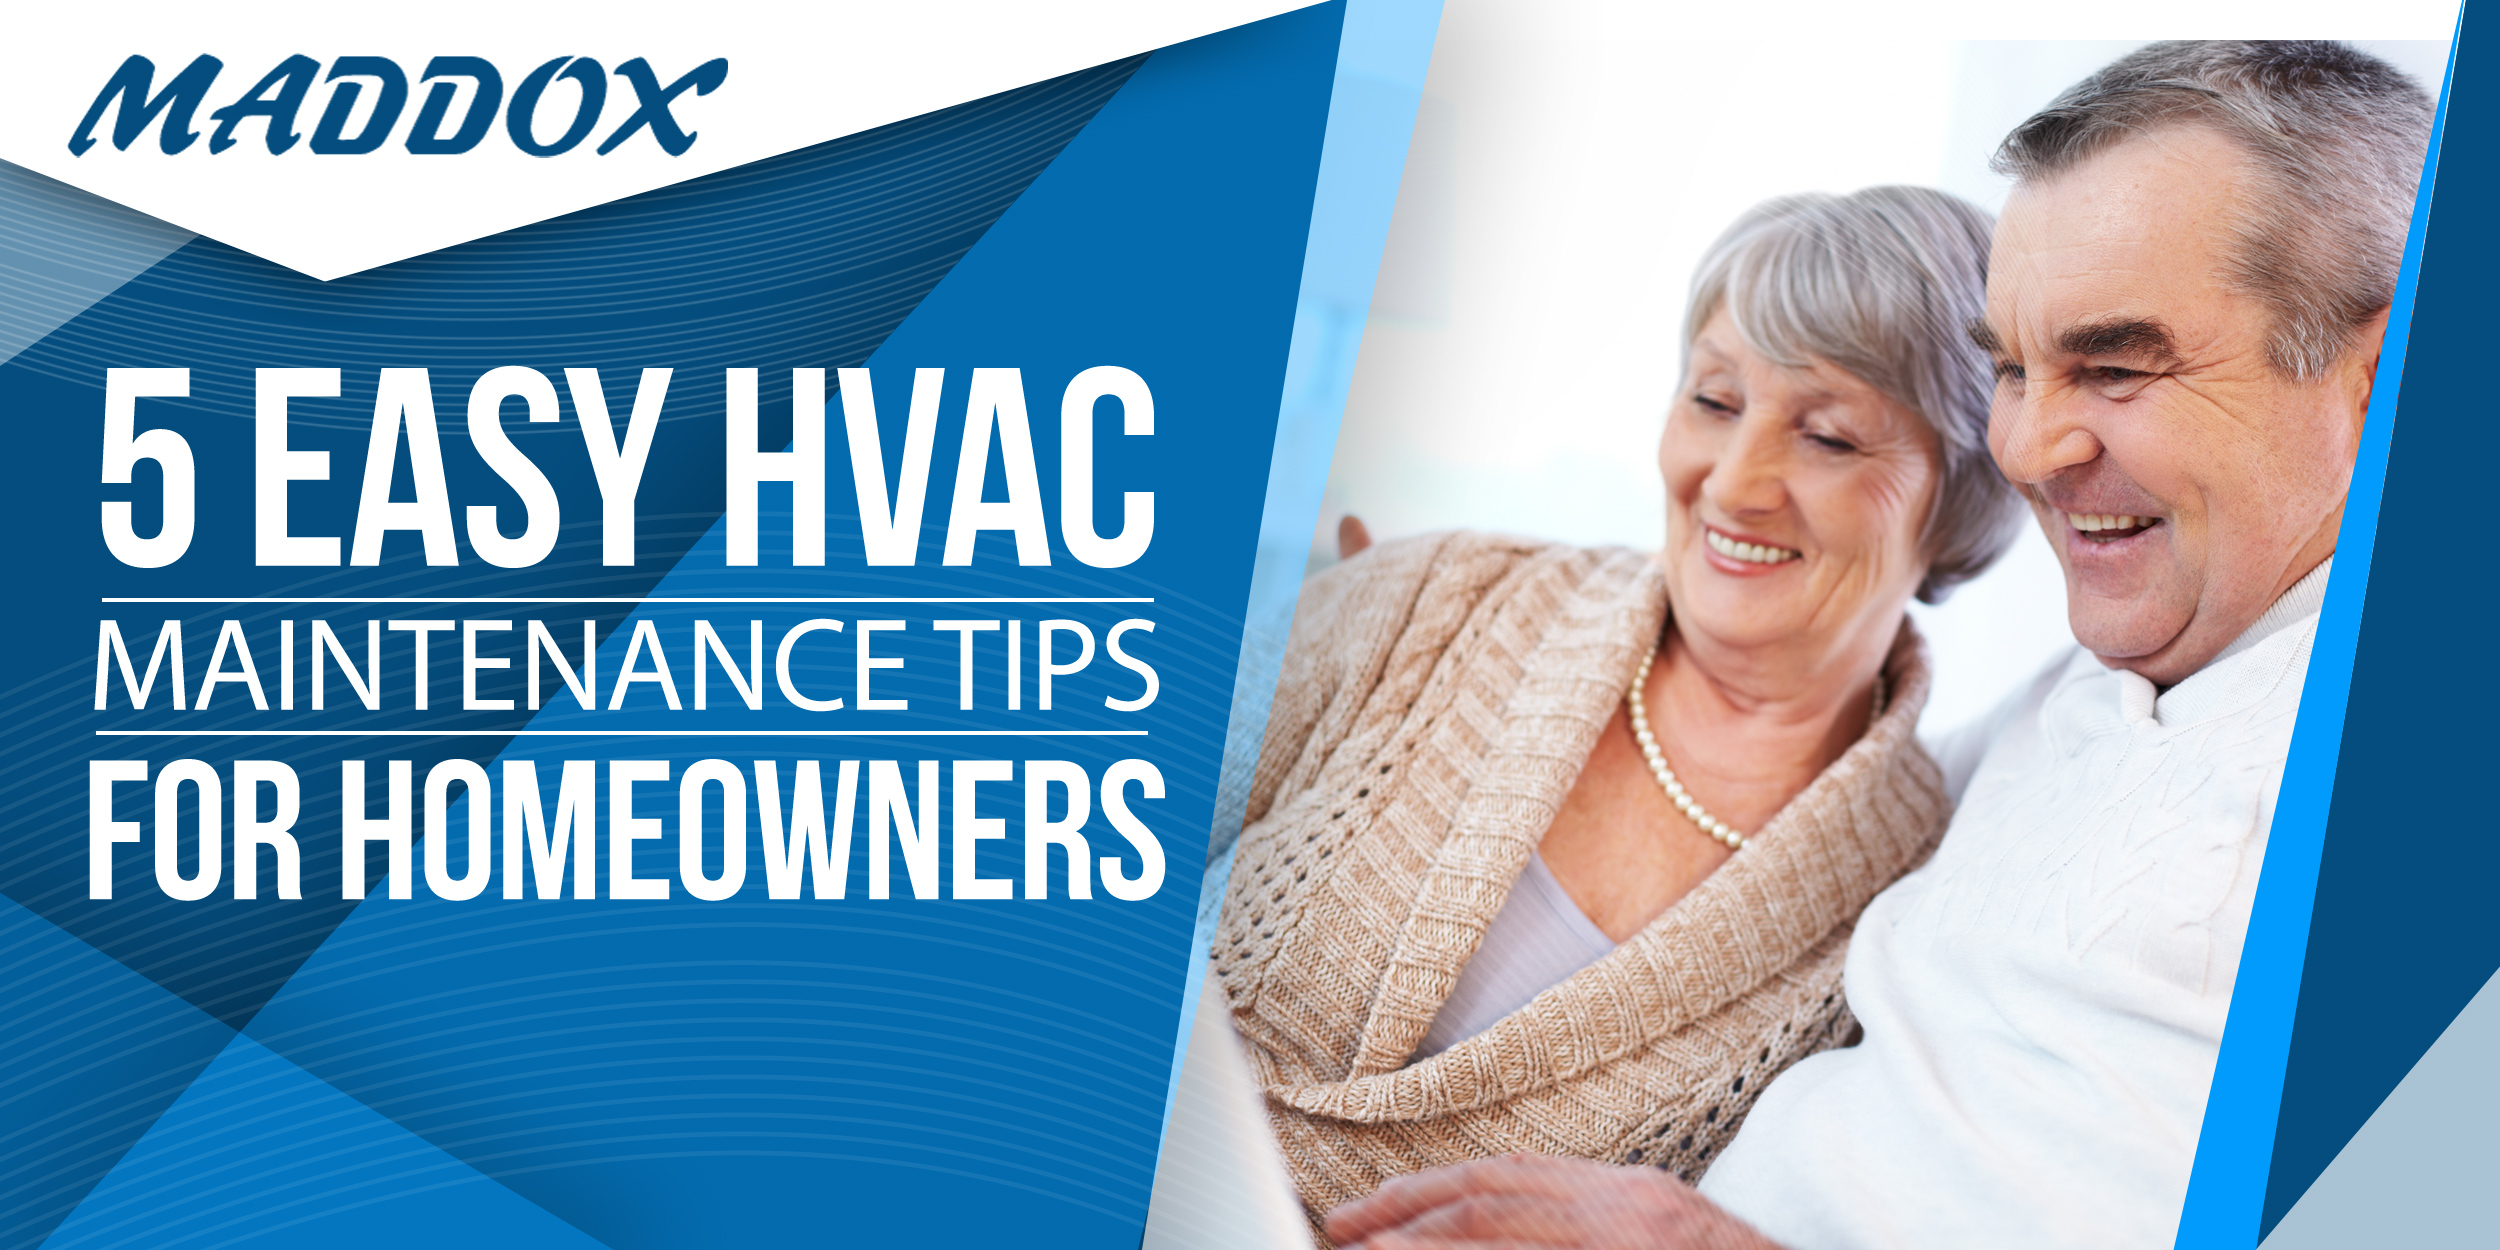 5 Easy HVAC Maintenance Tips For Homeowners